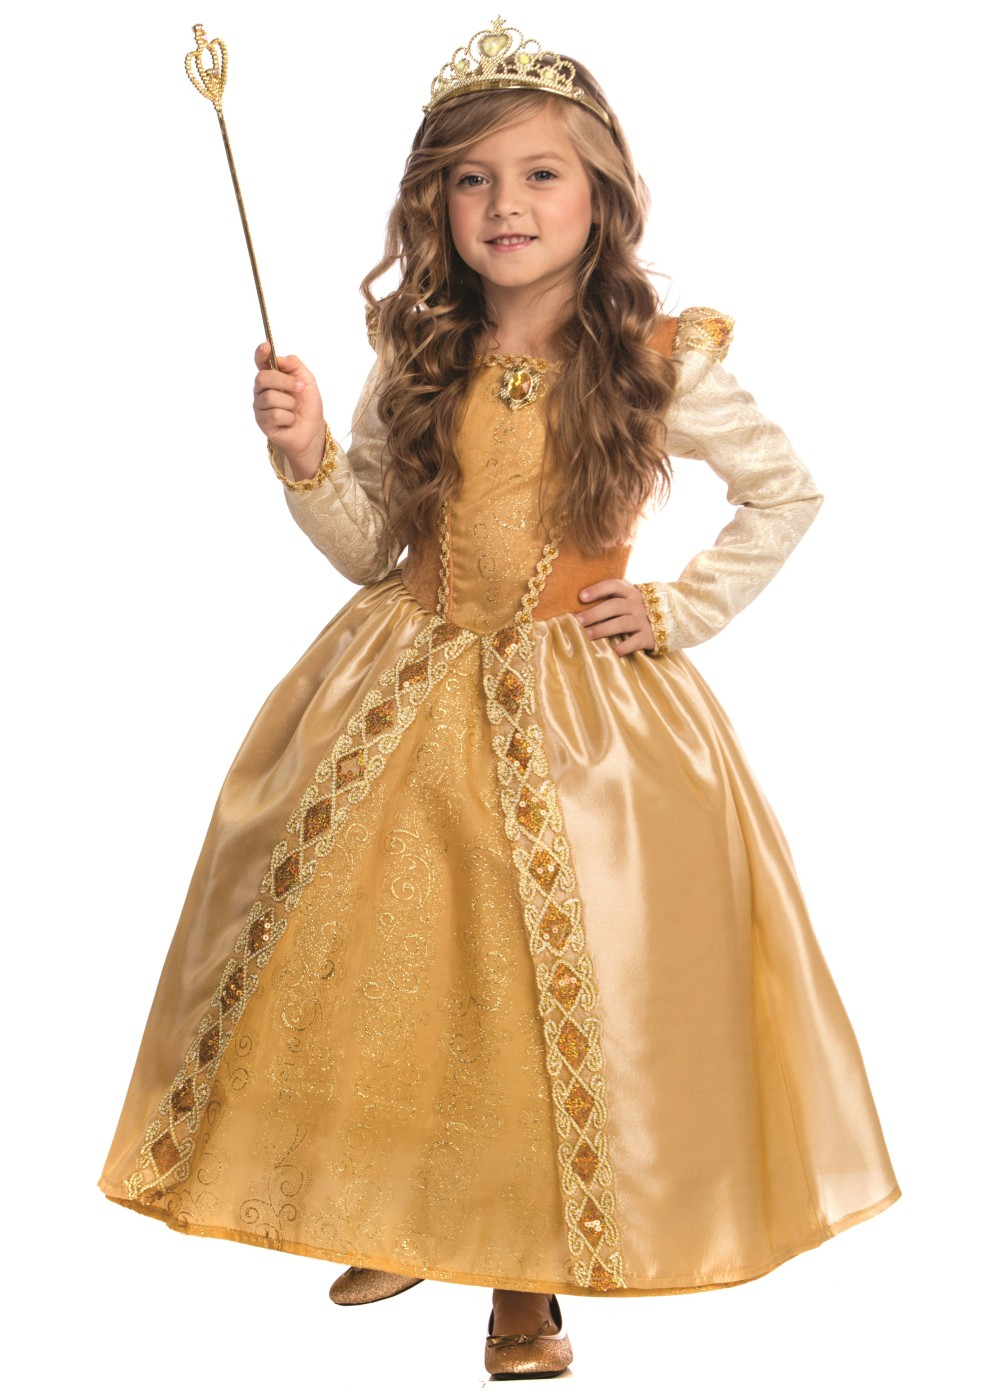 Majestic Golden Girl Princess Costume Costumes